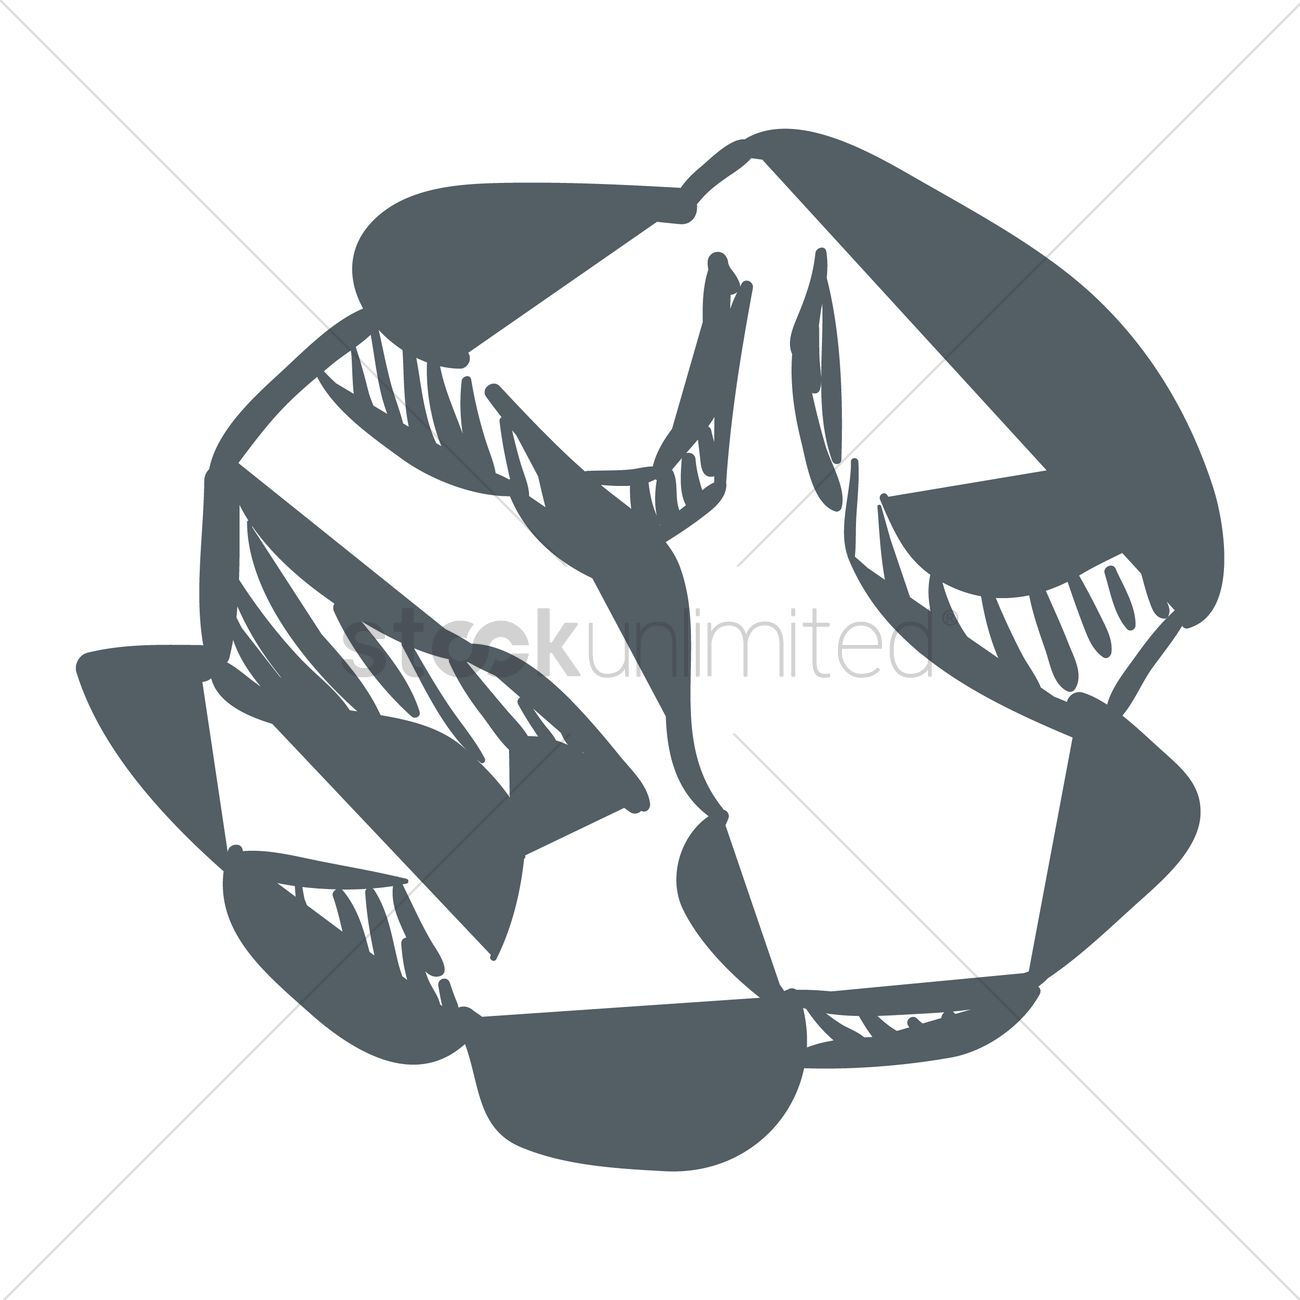 crumpled paper ball vector image - 1819127 | stockunlimited